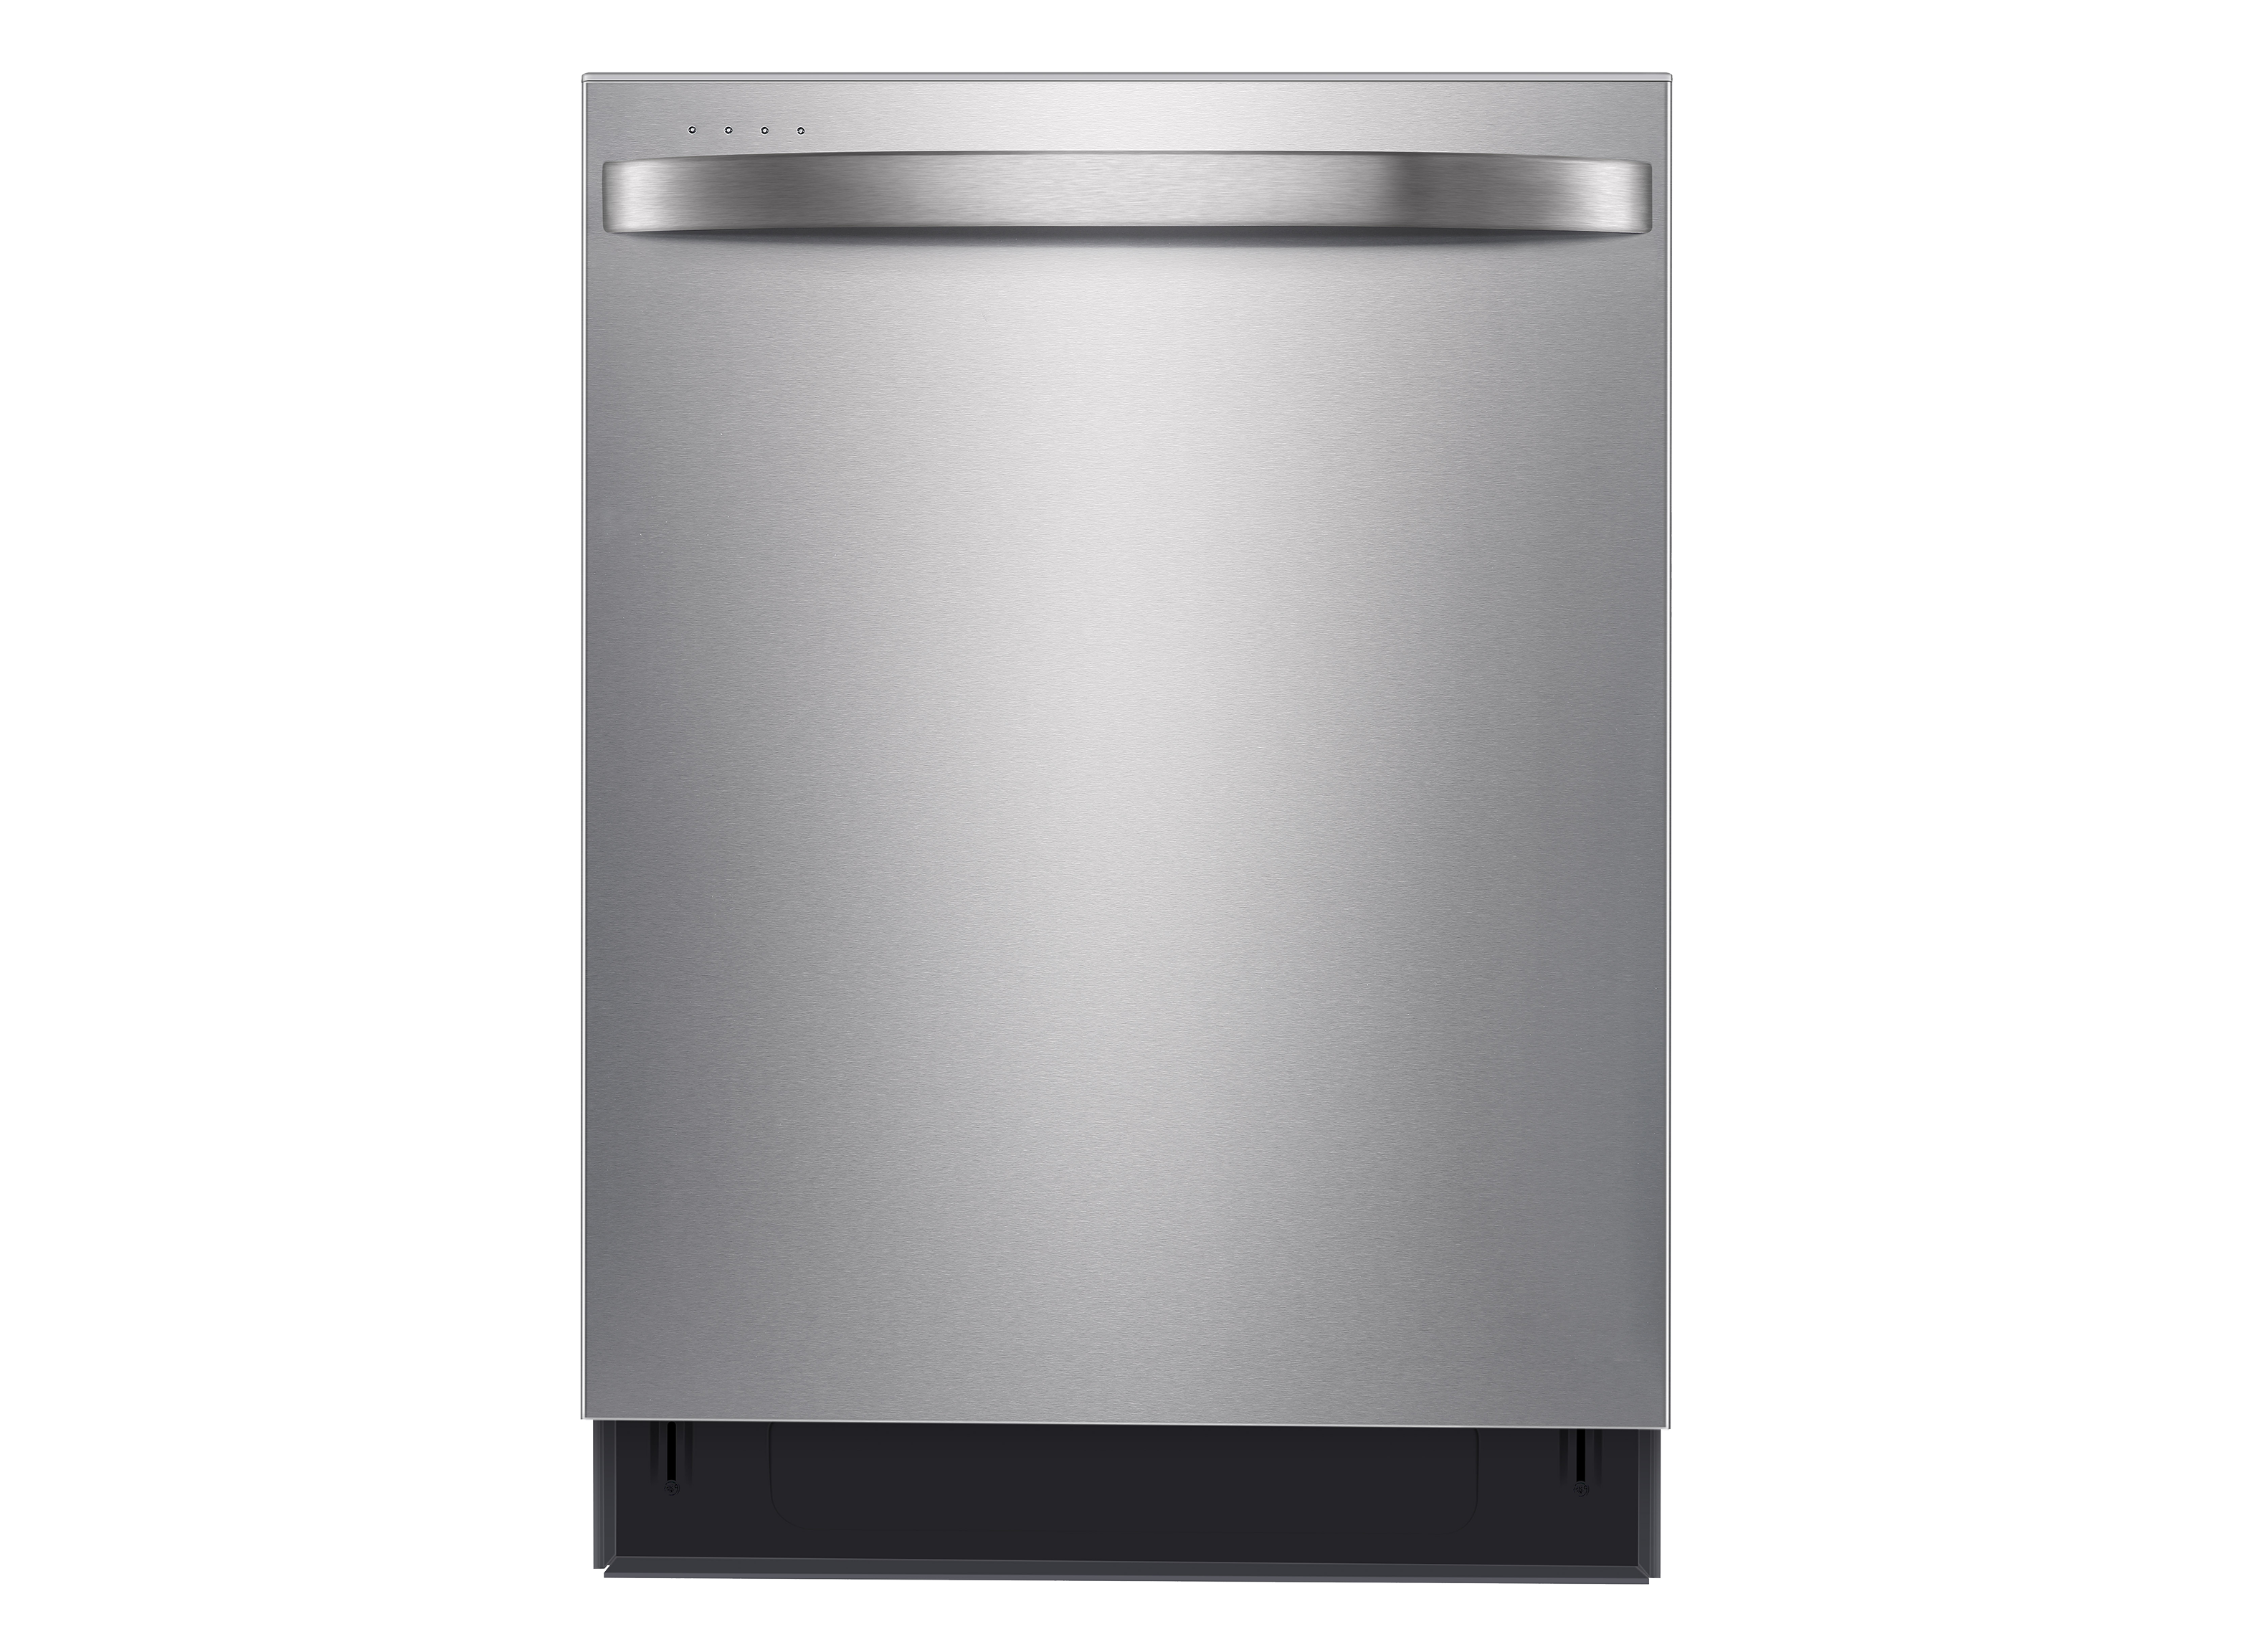 Midea Mdt24h3ast Dishwasher Consumer Reports